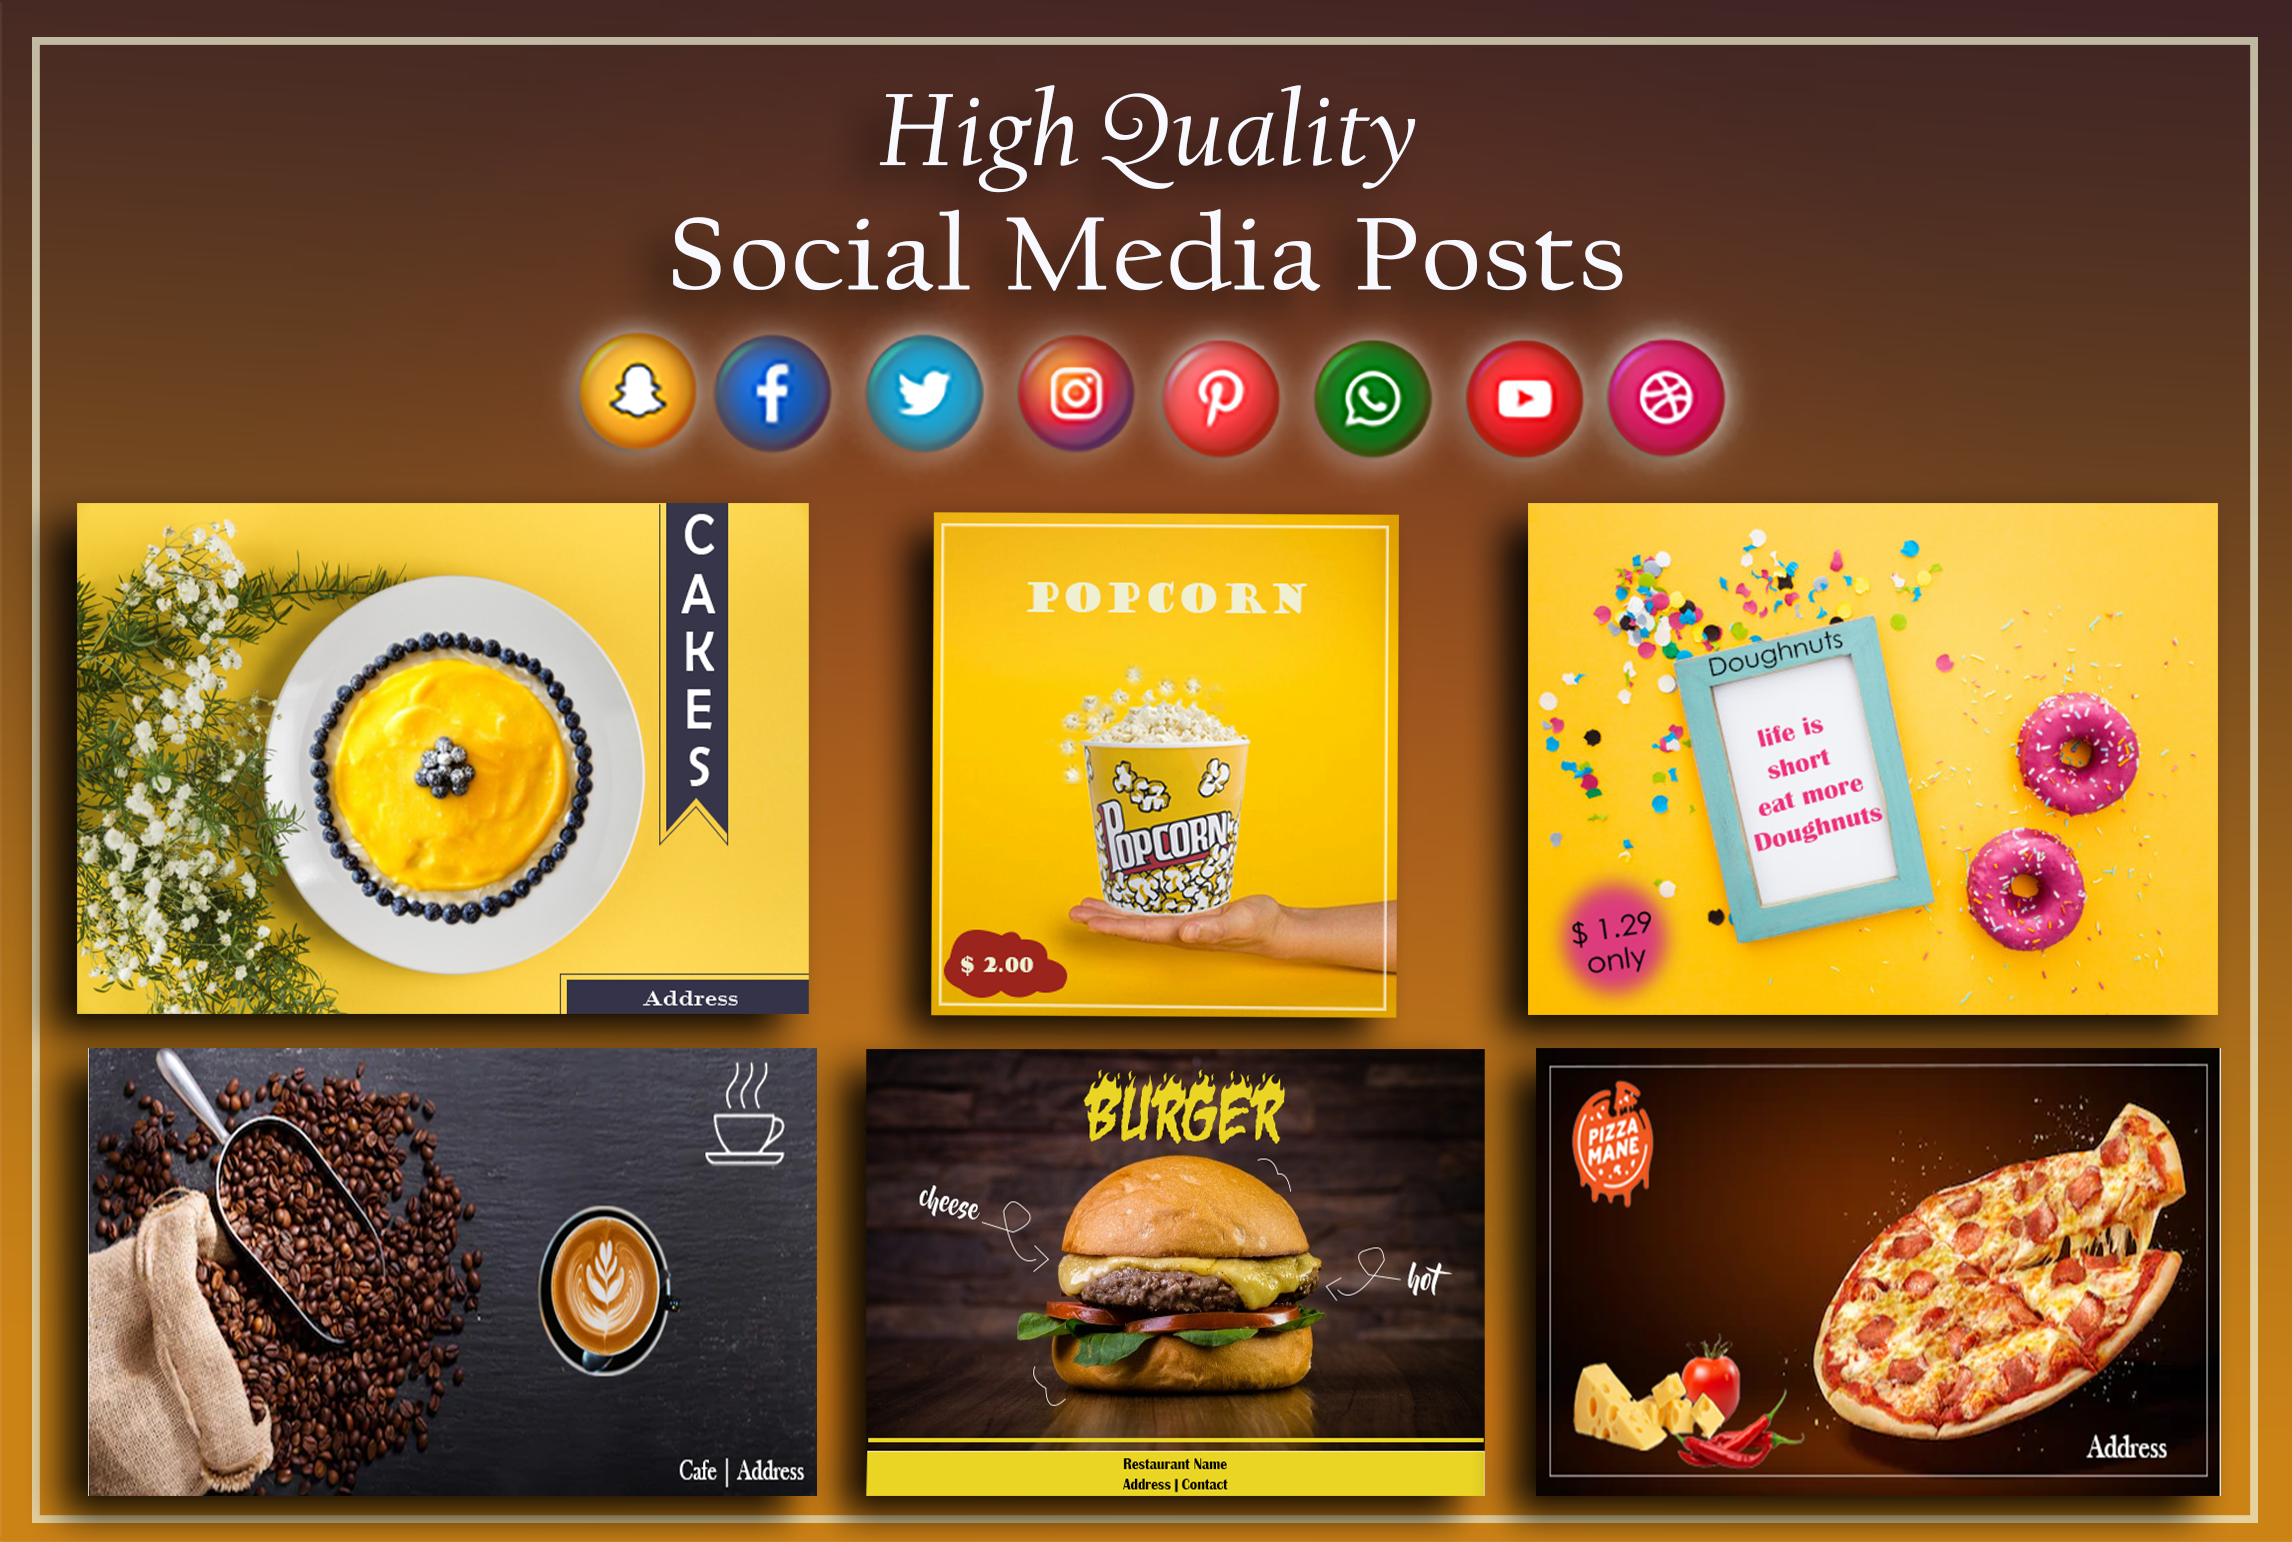 High quality social media ads, banners, covers and headers